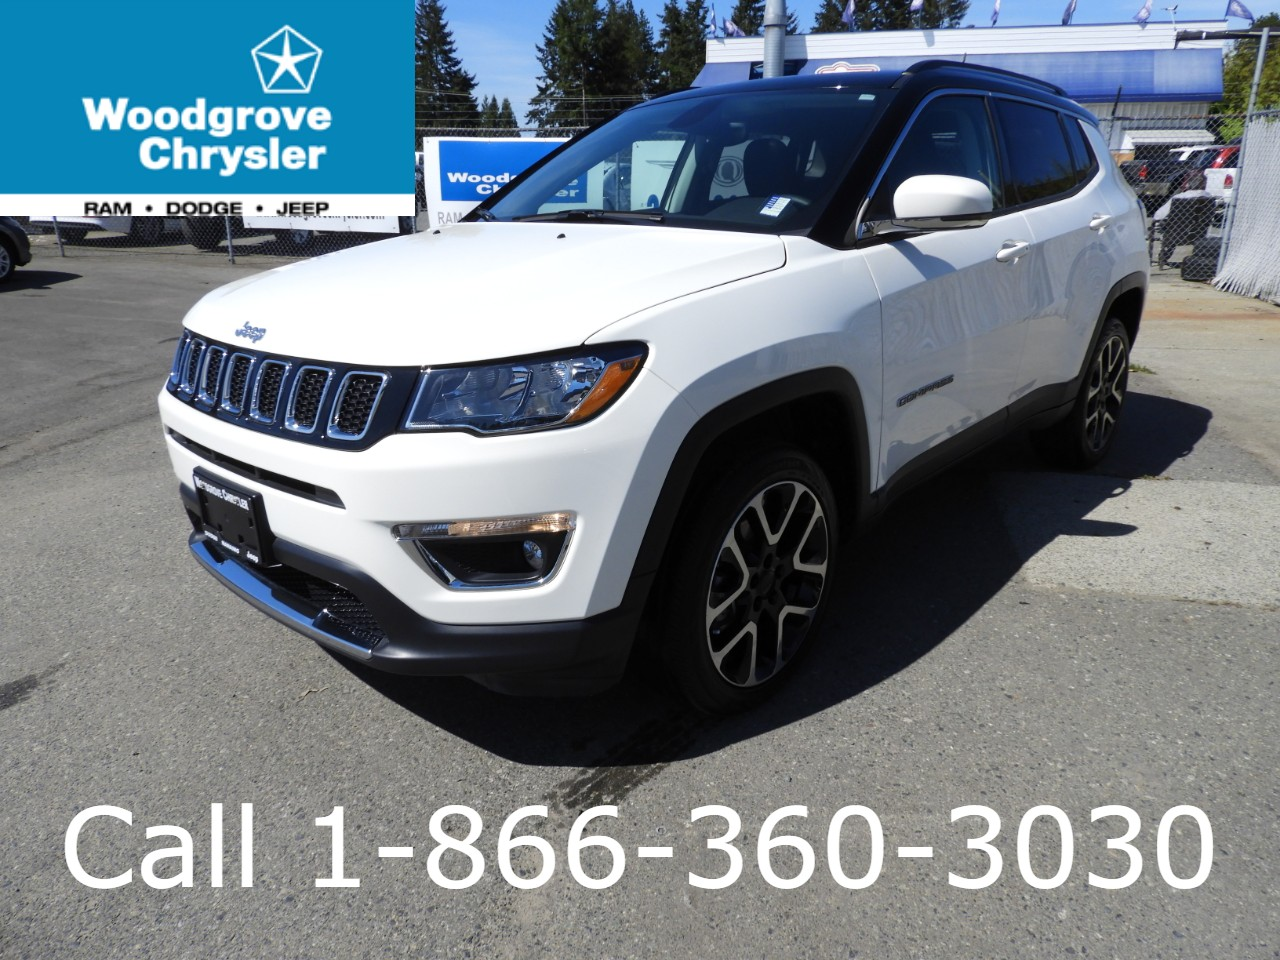 2018 Jeep Compass Limited 4x4 Leather Navigation Sunroof SUV